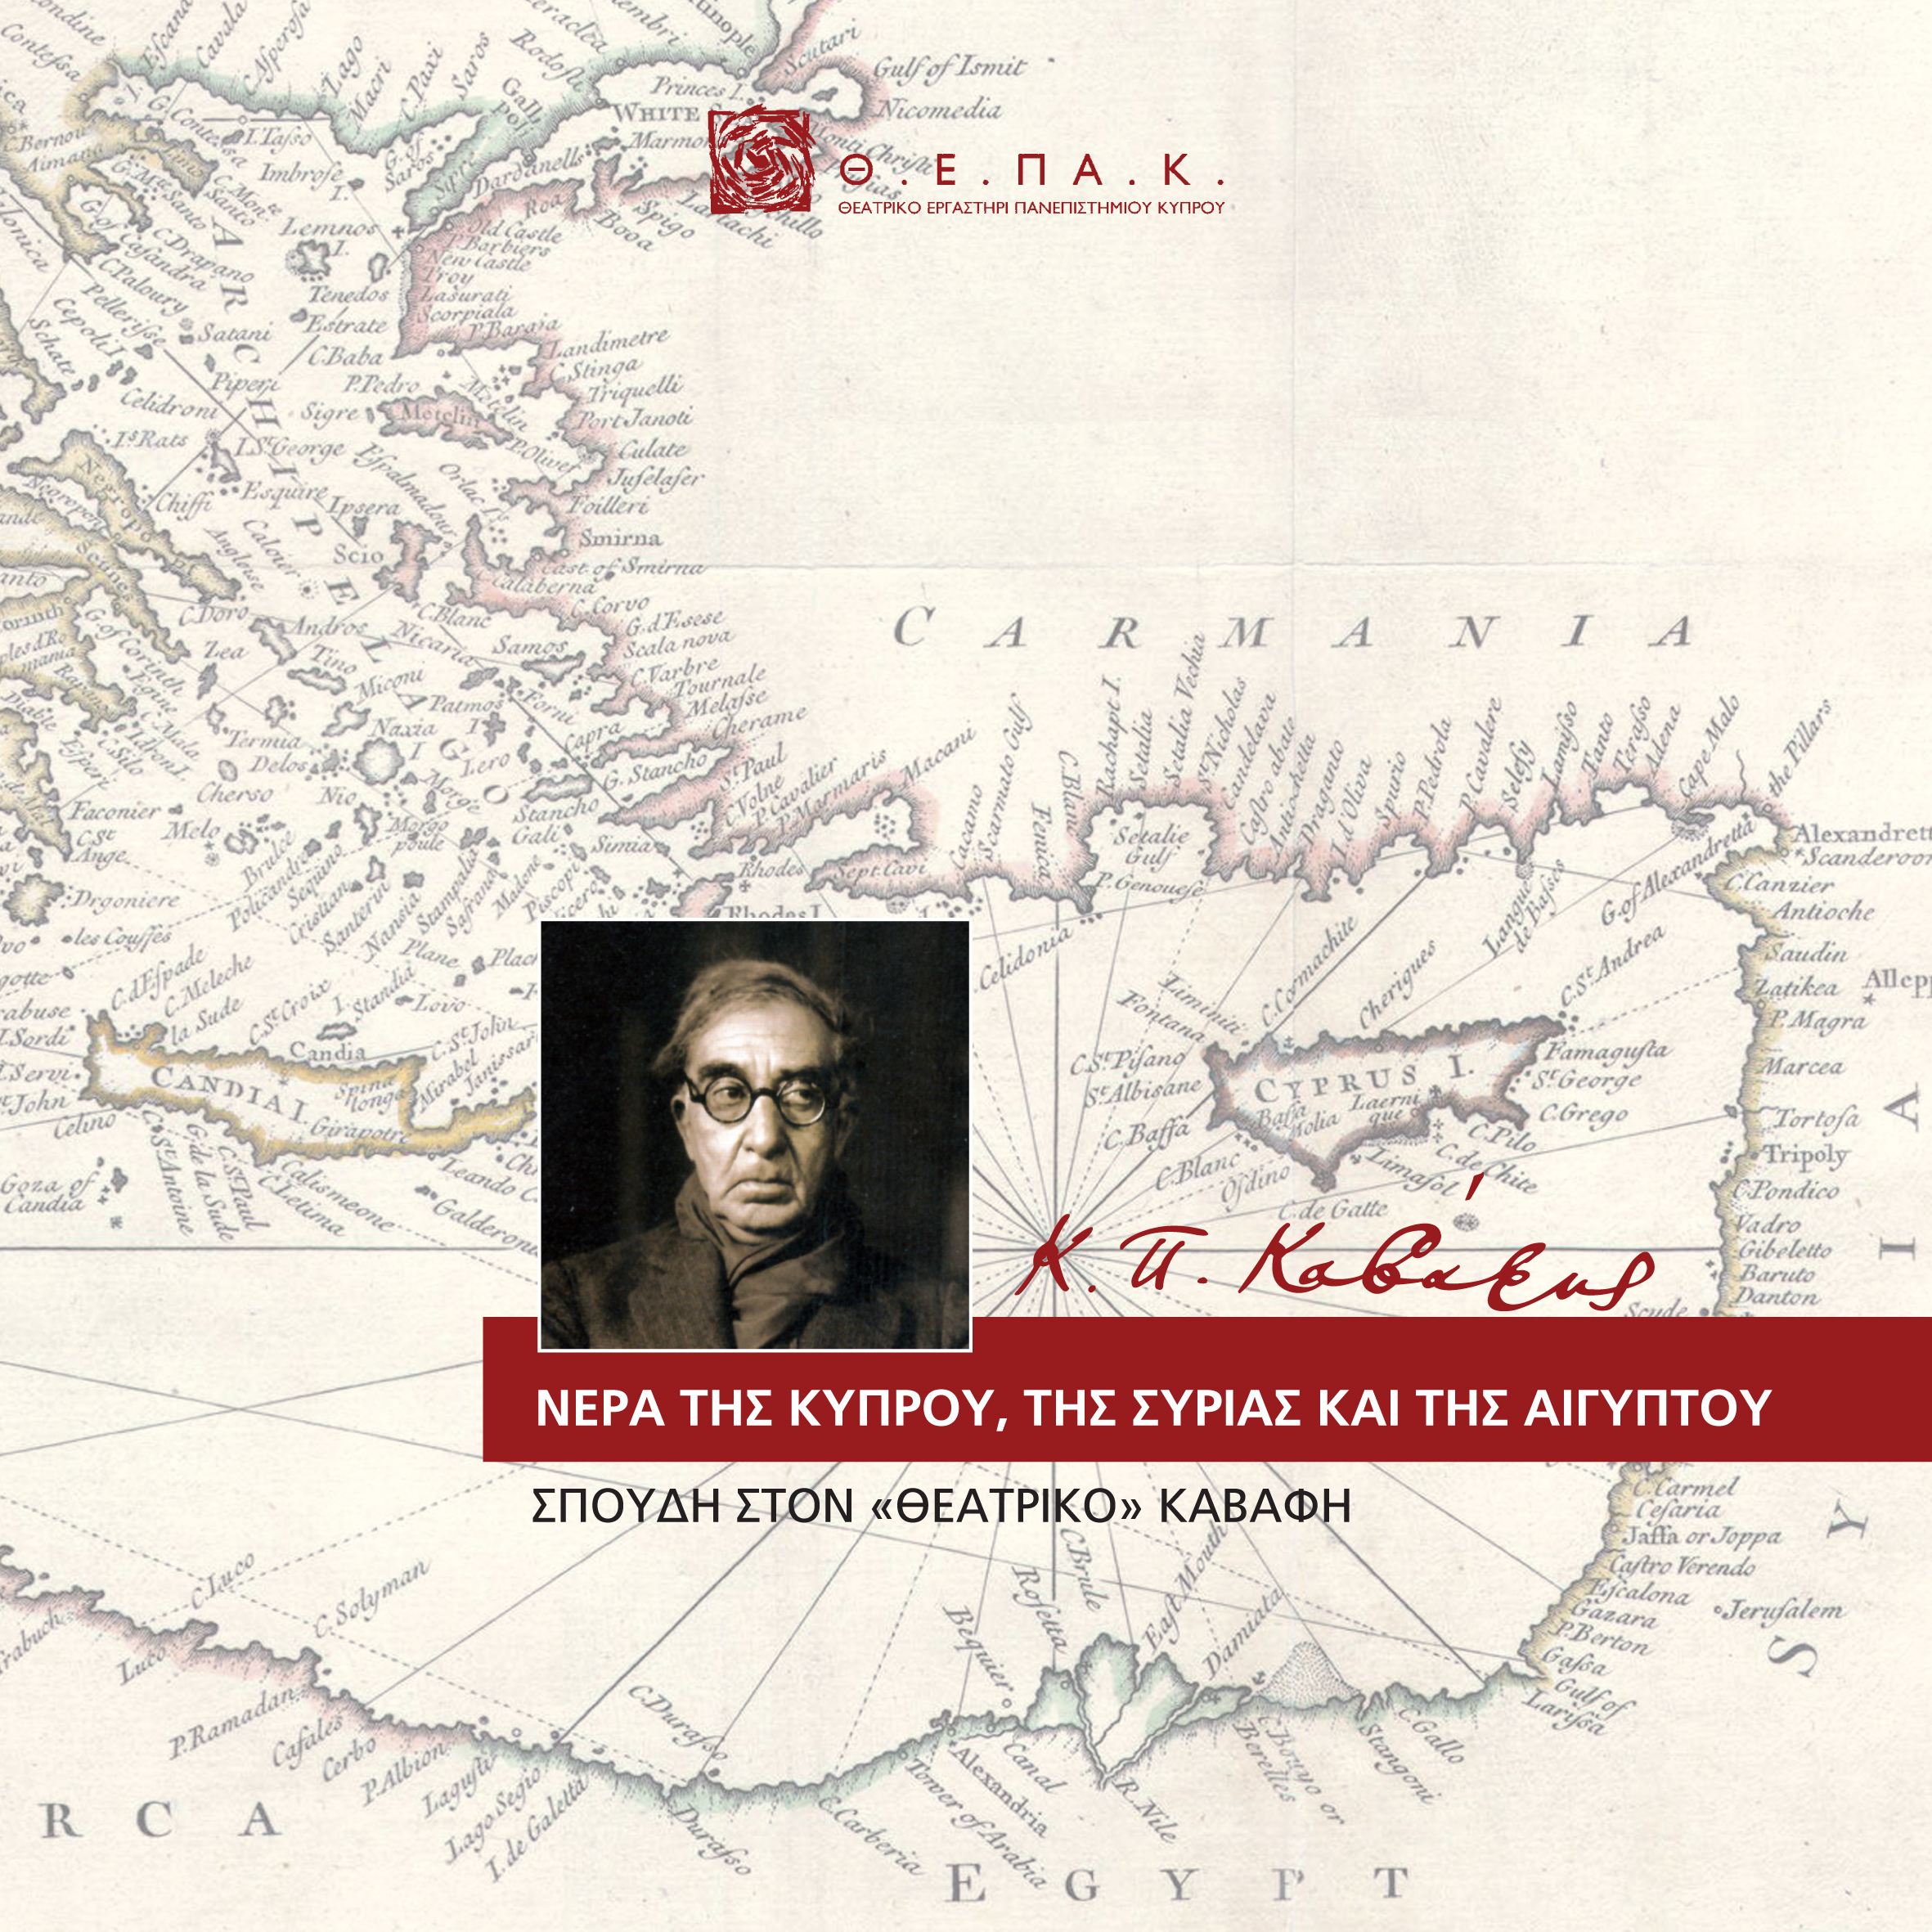 Cavafy-Booklet-Cover